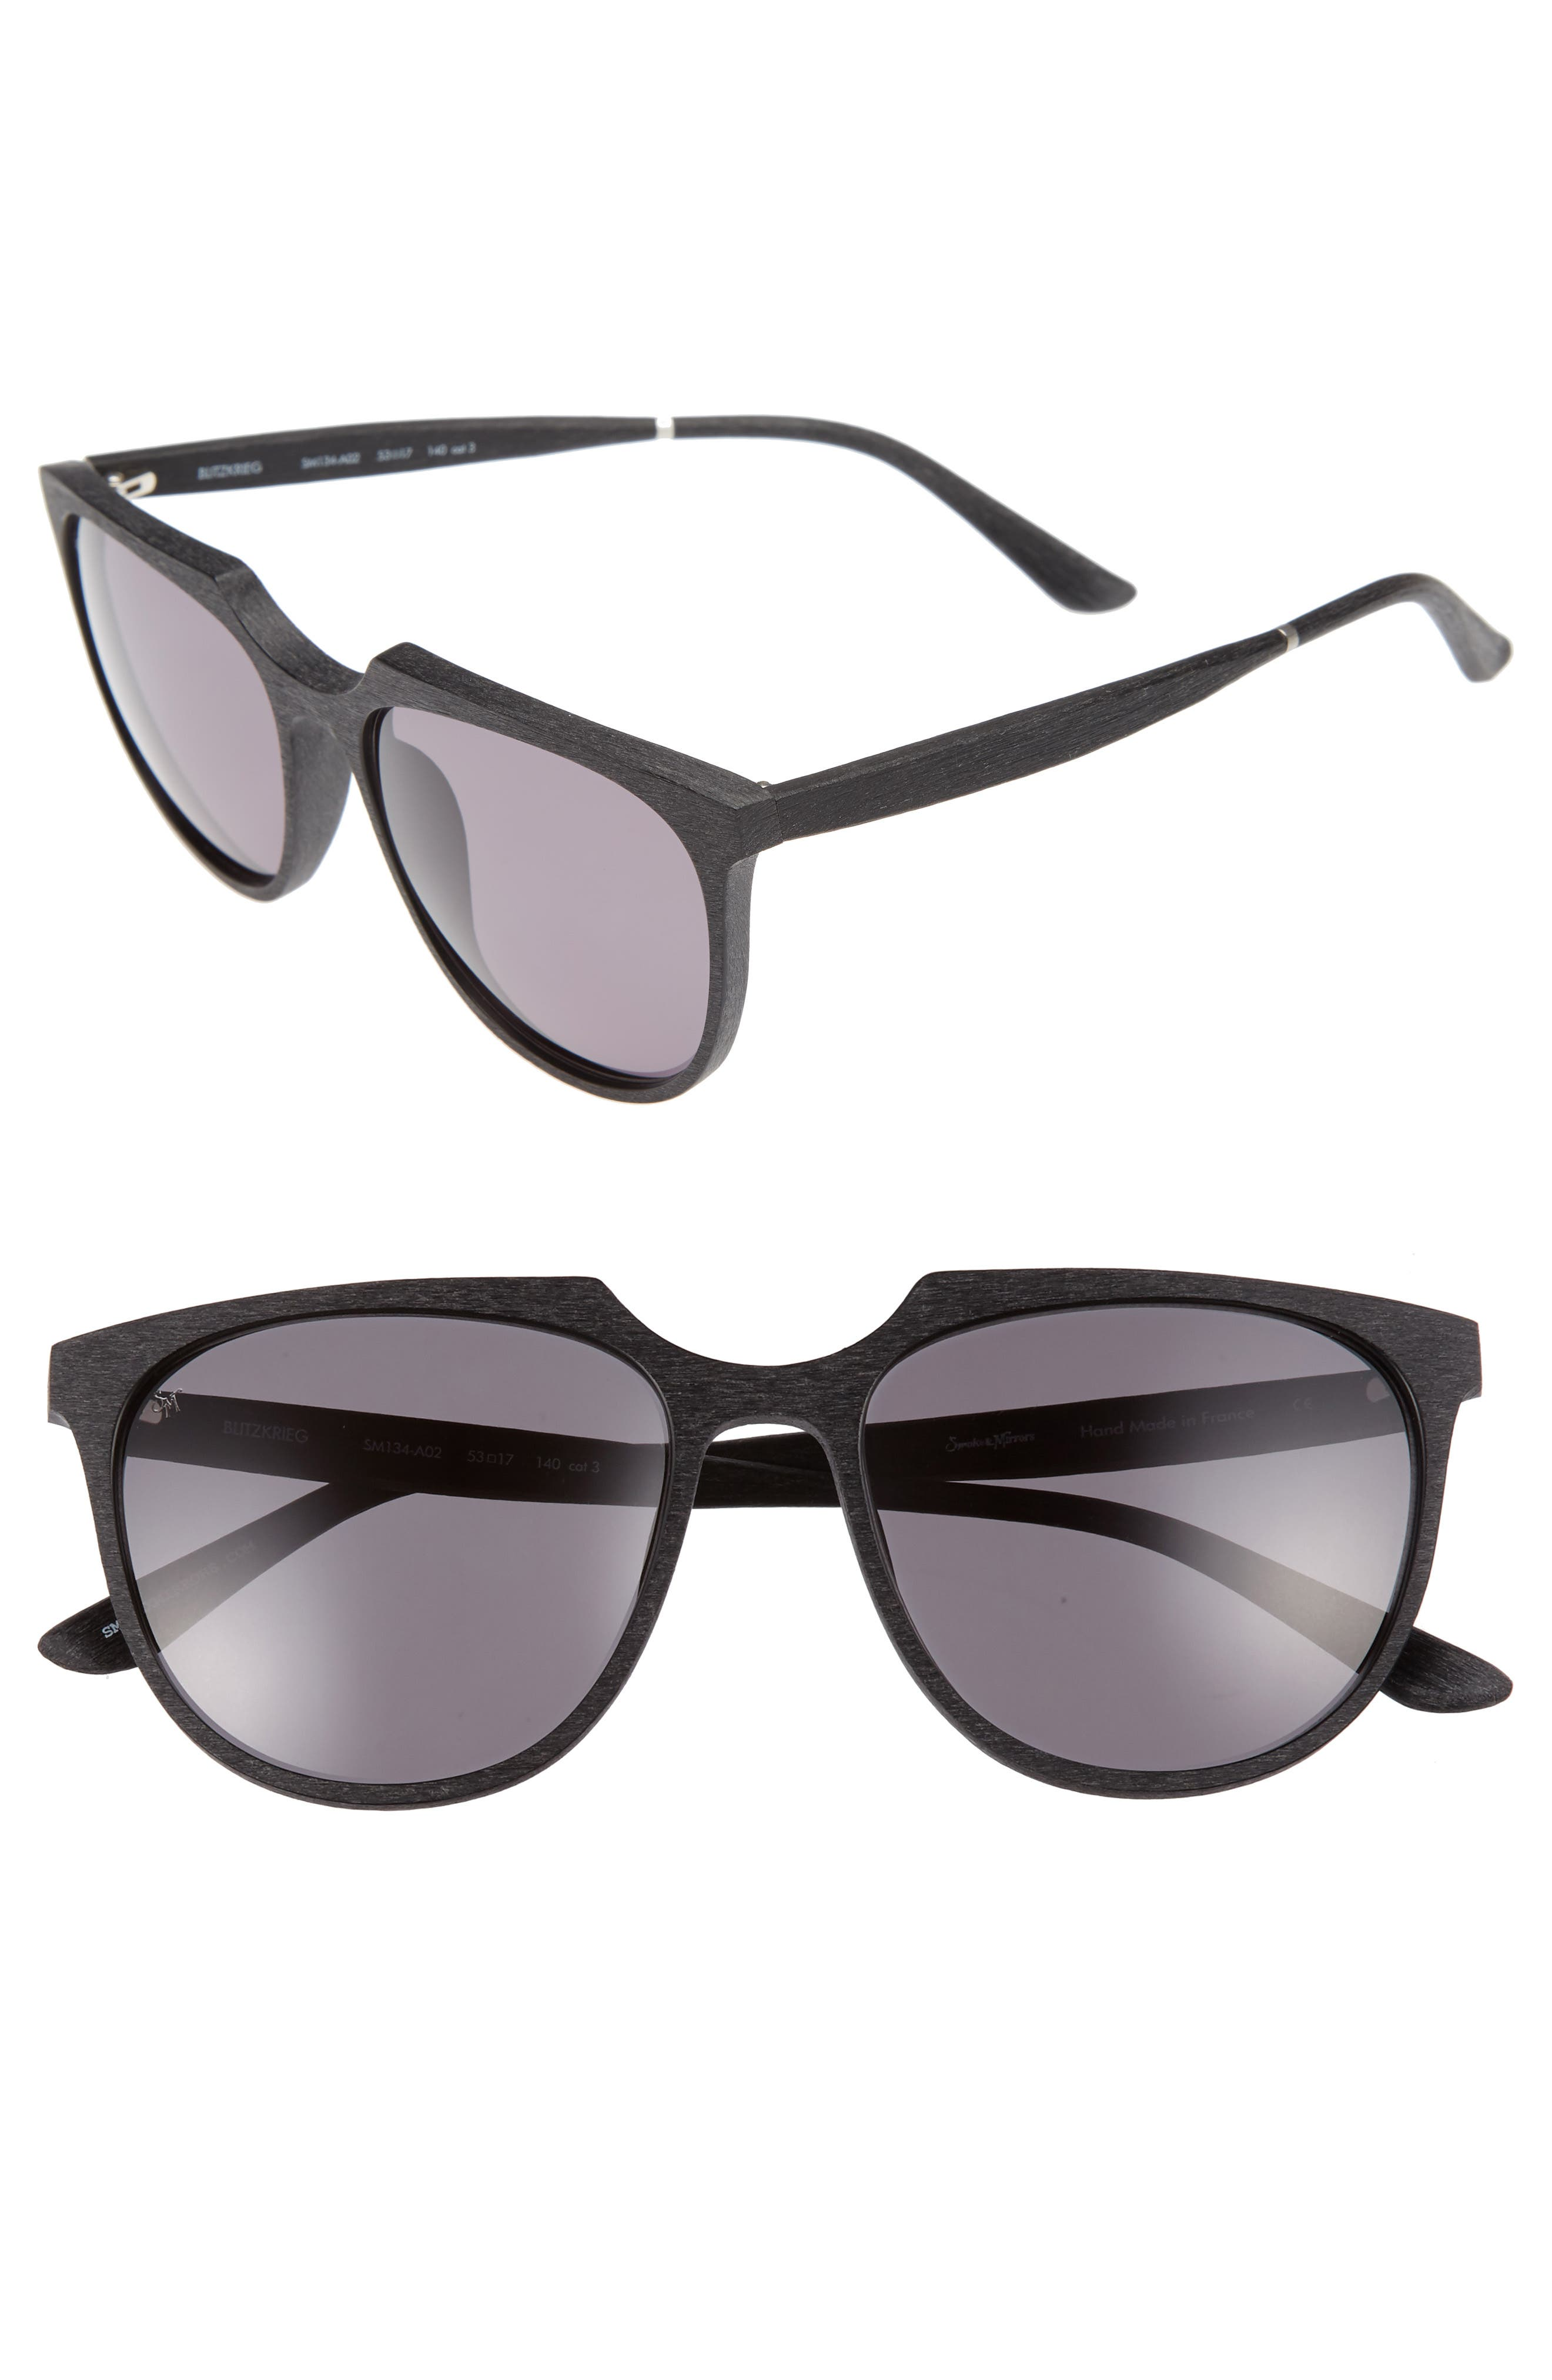 Blitzkrieg 53mm Sunglasses,                             Main thumbnail 1, color,                             001